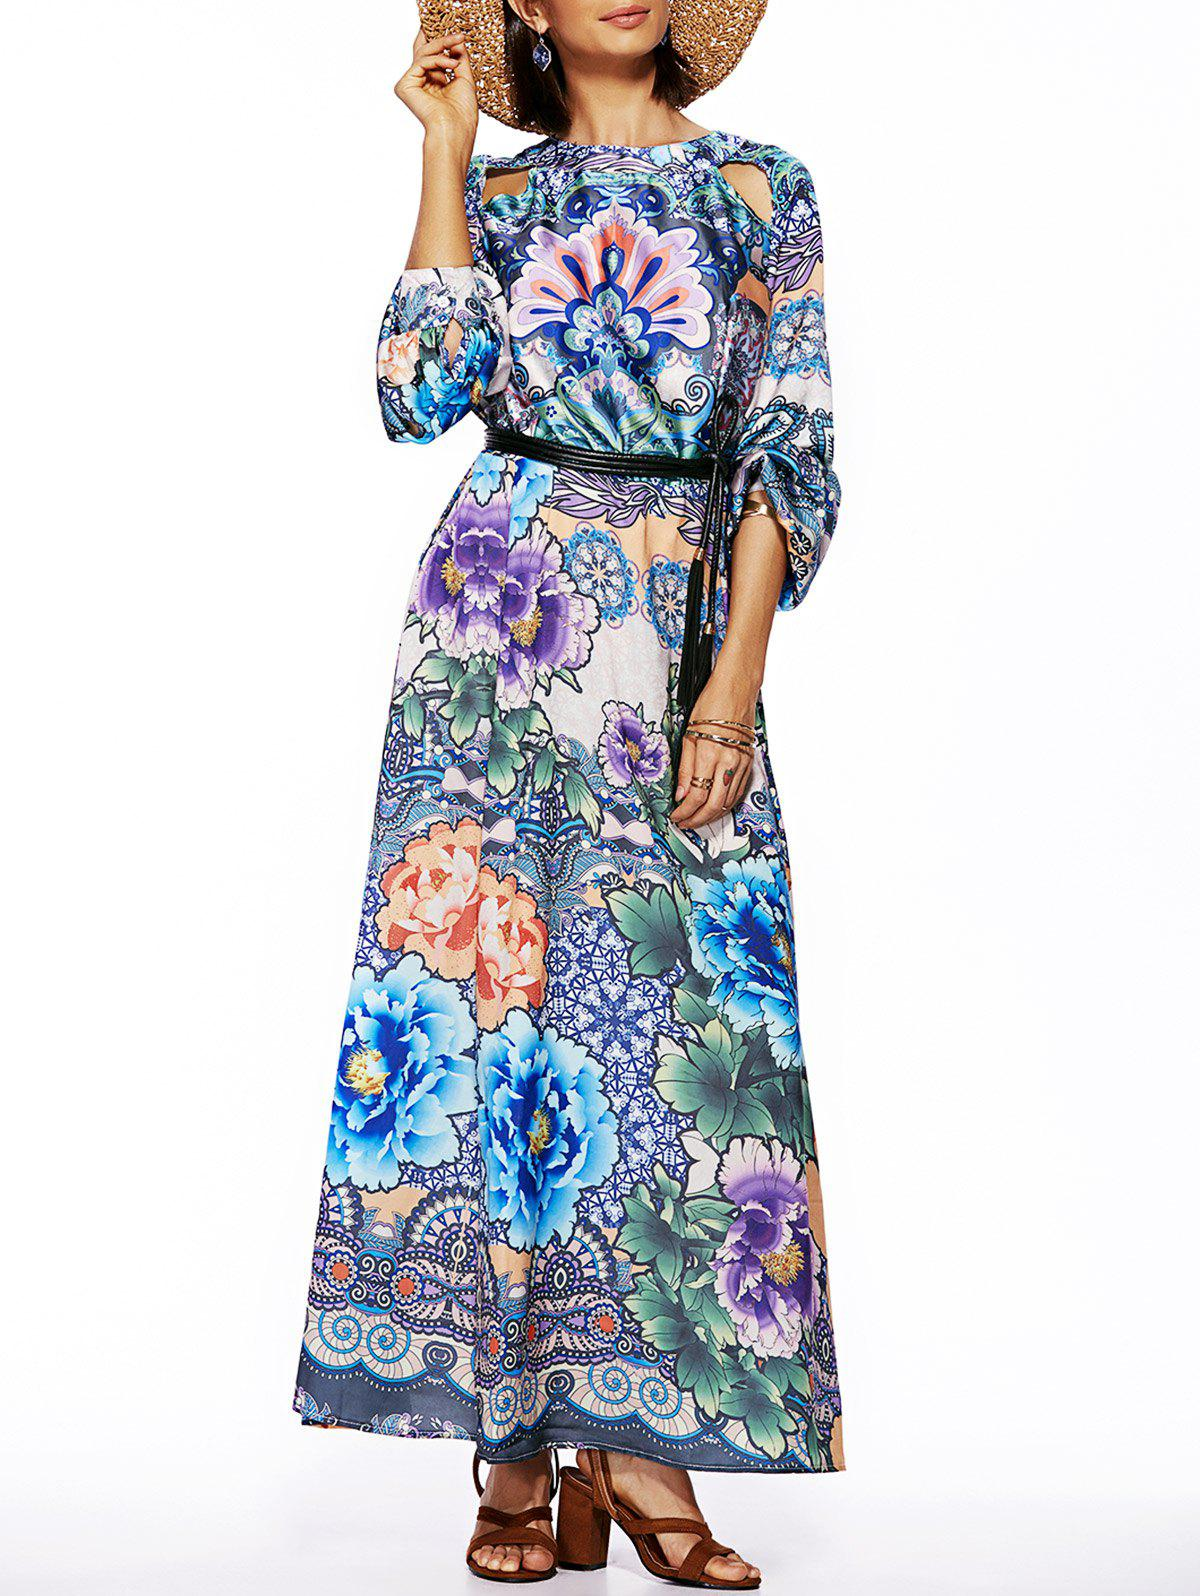 Shops Bohemian Style Women's Long Sleeve Floral Print Round Neck Dress